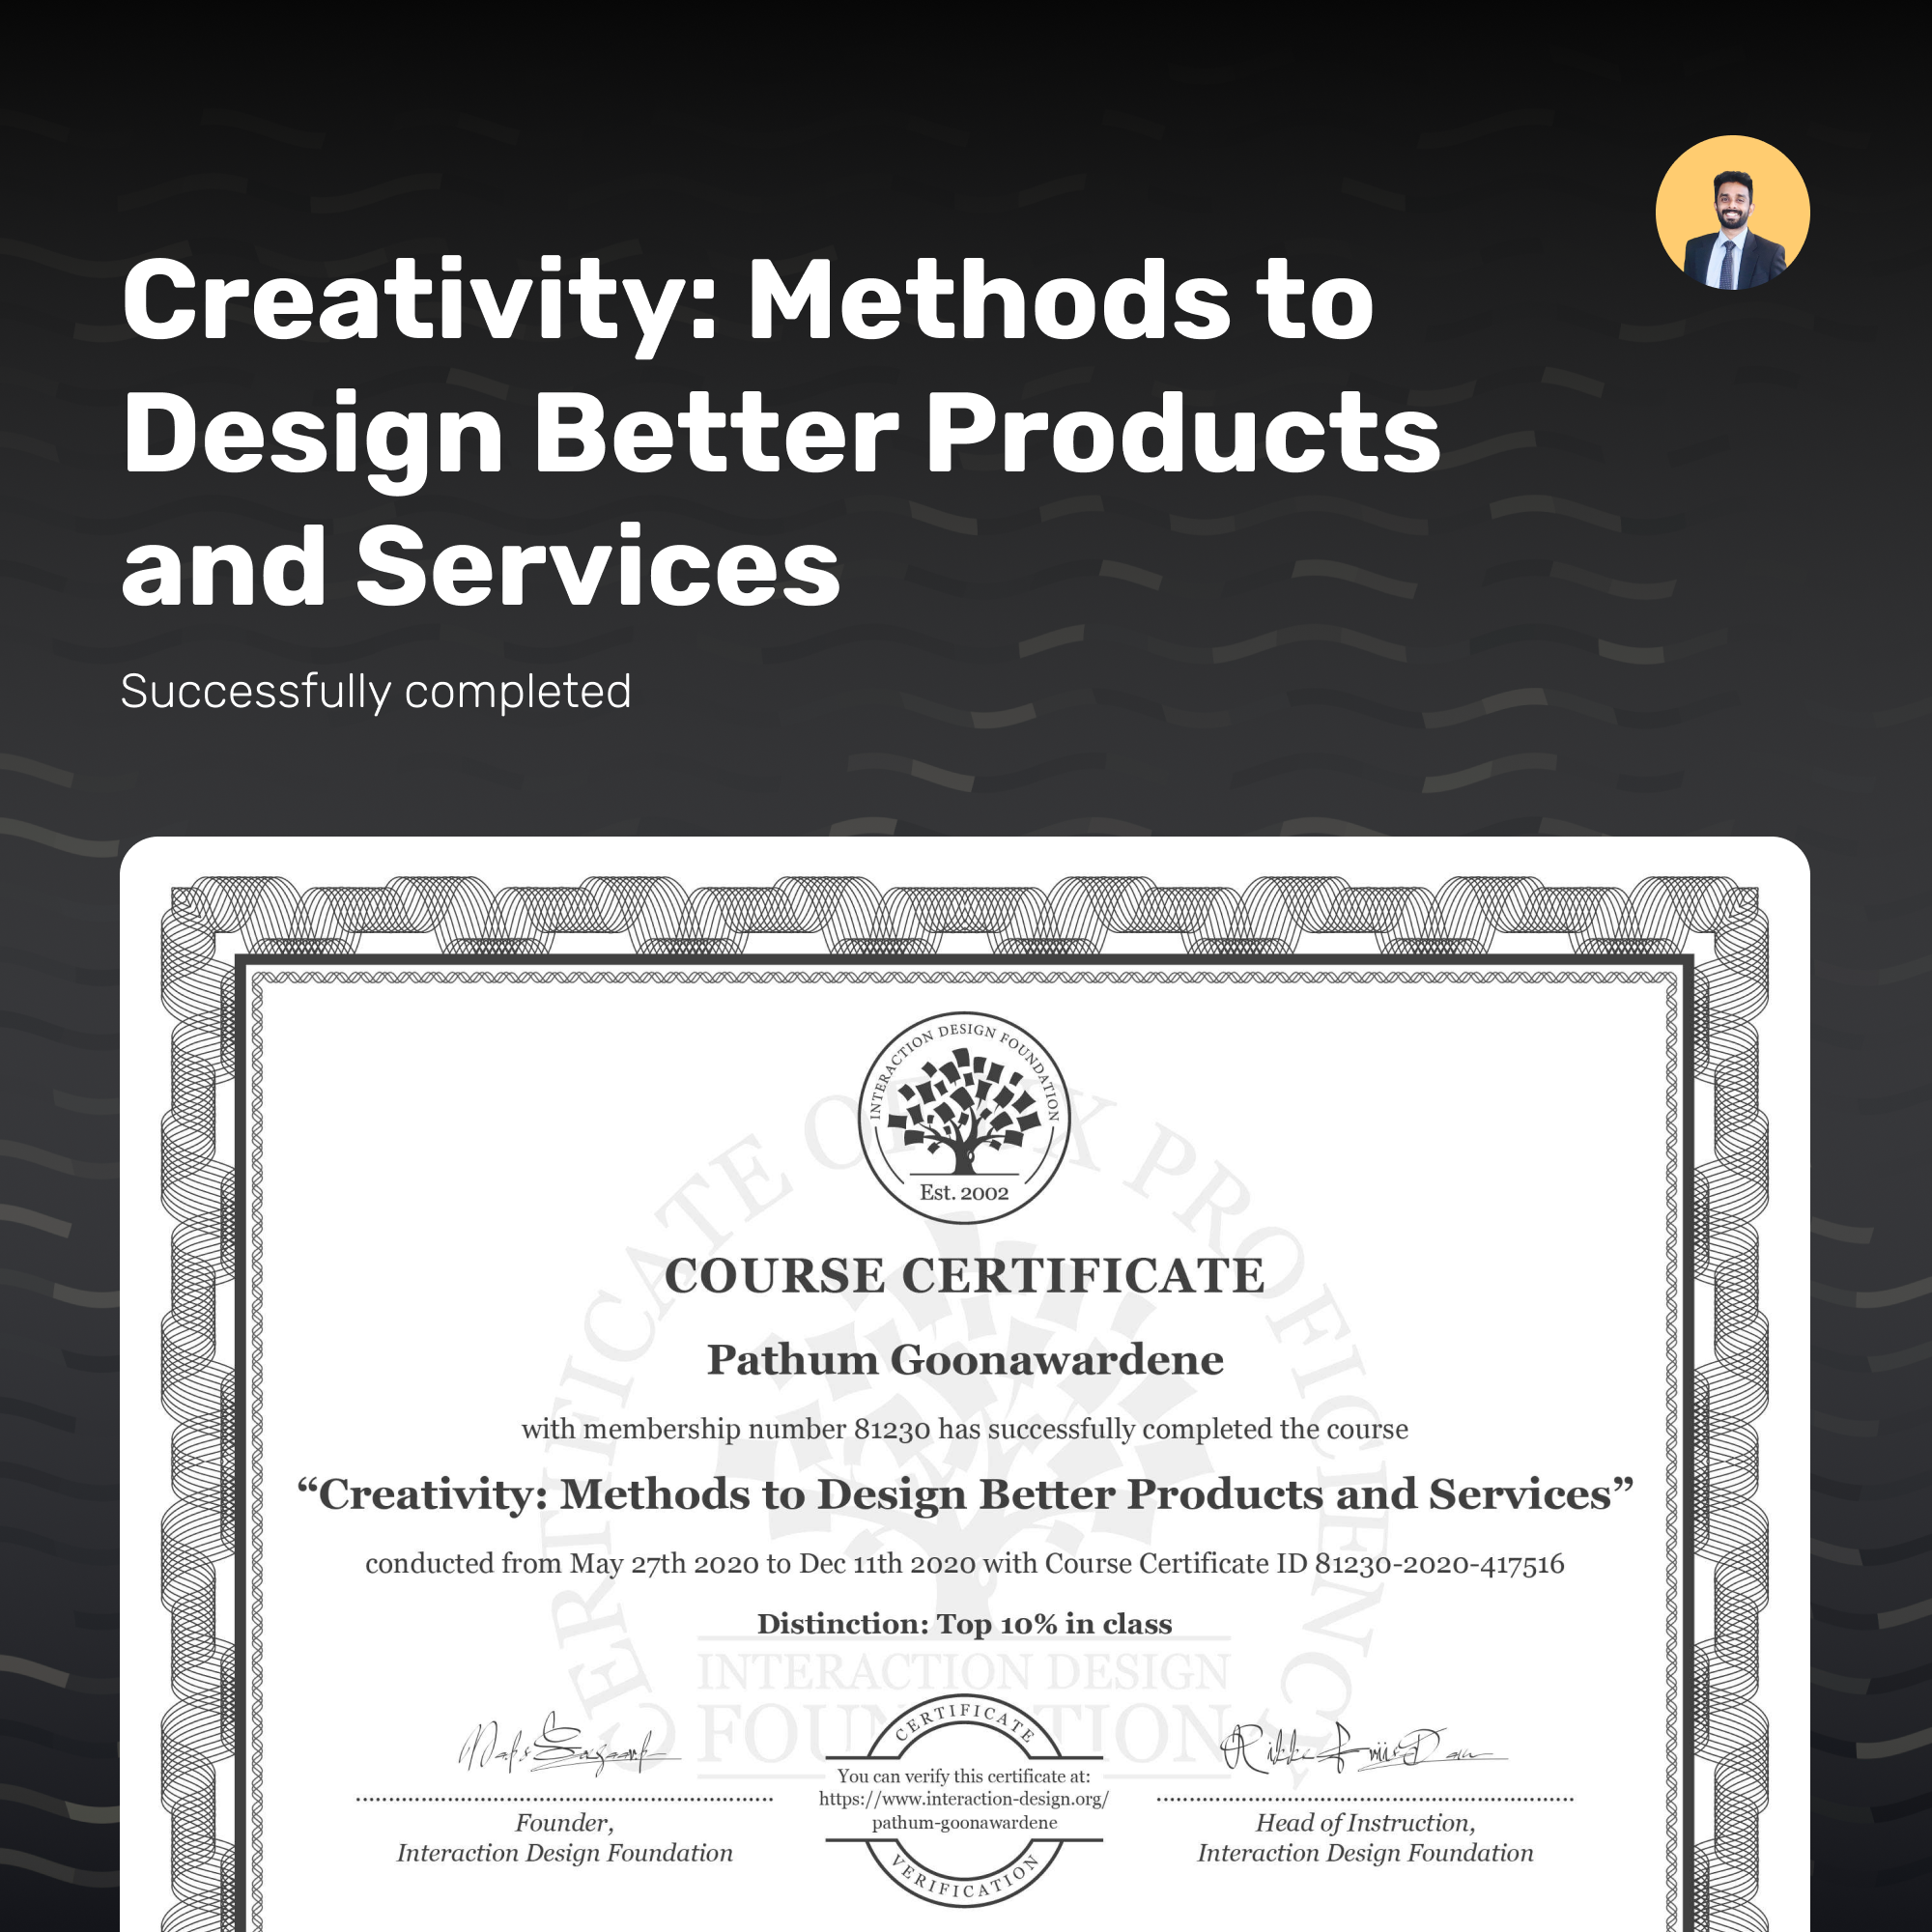 Creativity: Methods to Design Better Products and Services